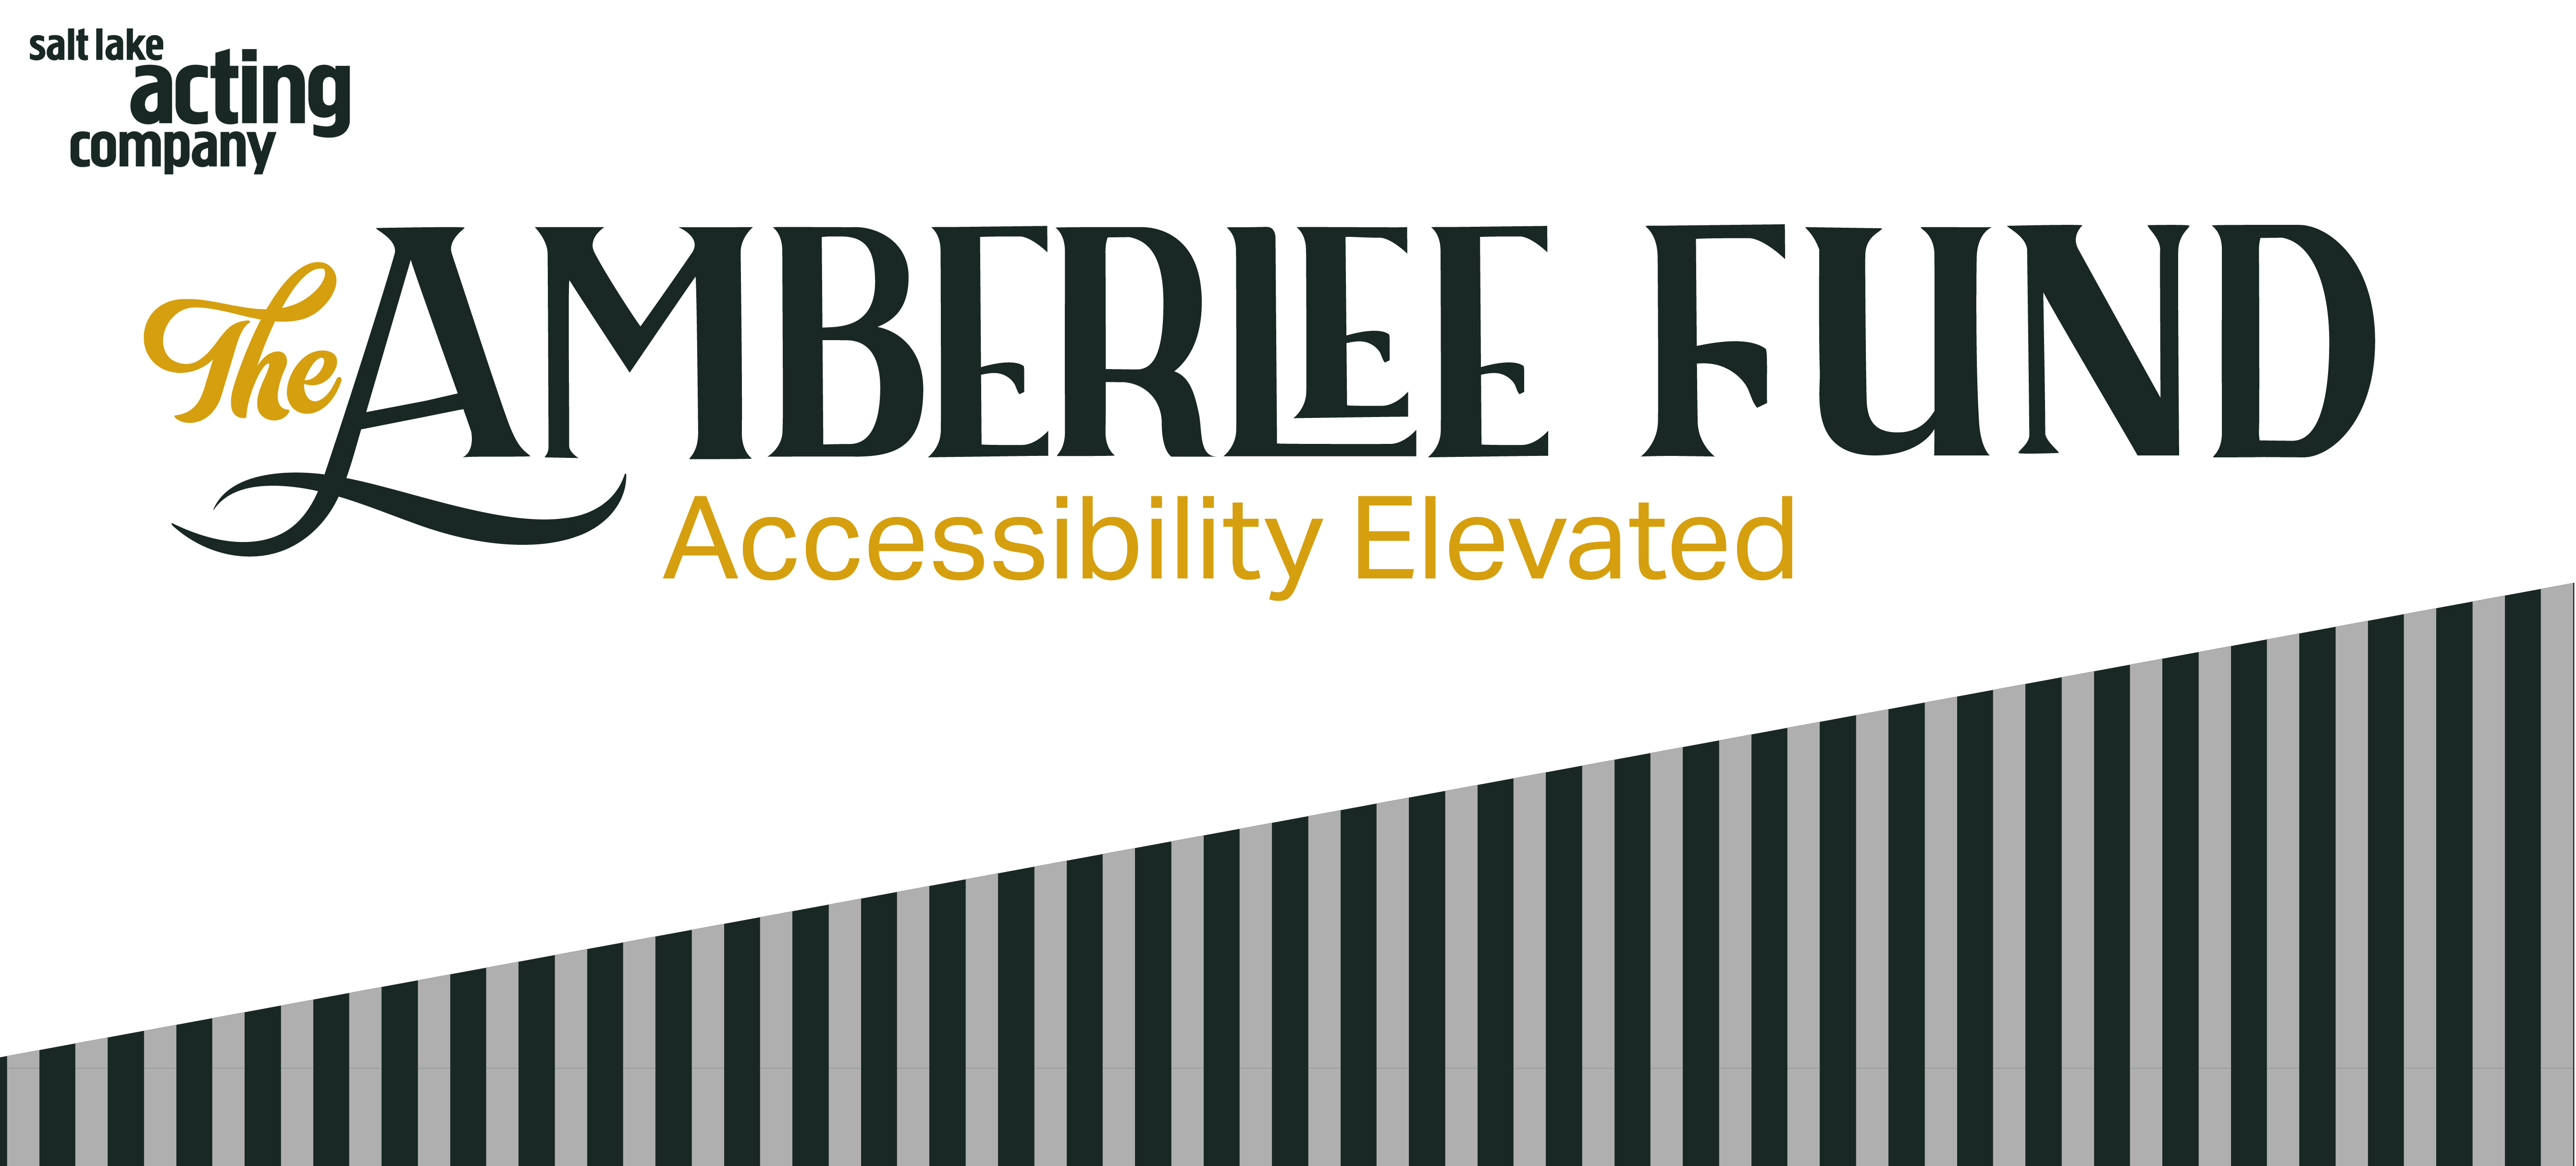 Text that says THE AMBERLEE FUND Accessibility Elevated on white background with grey and black stripes diagonally below.